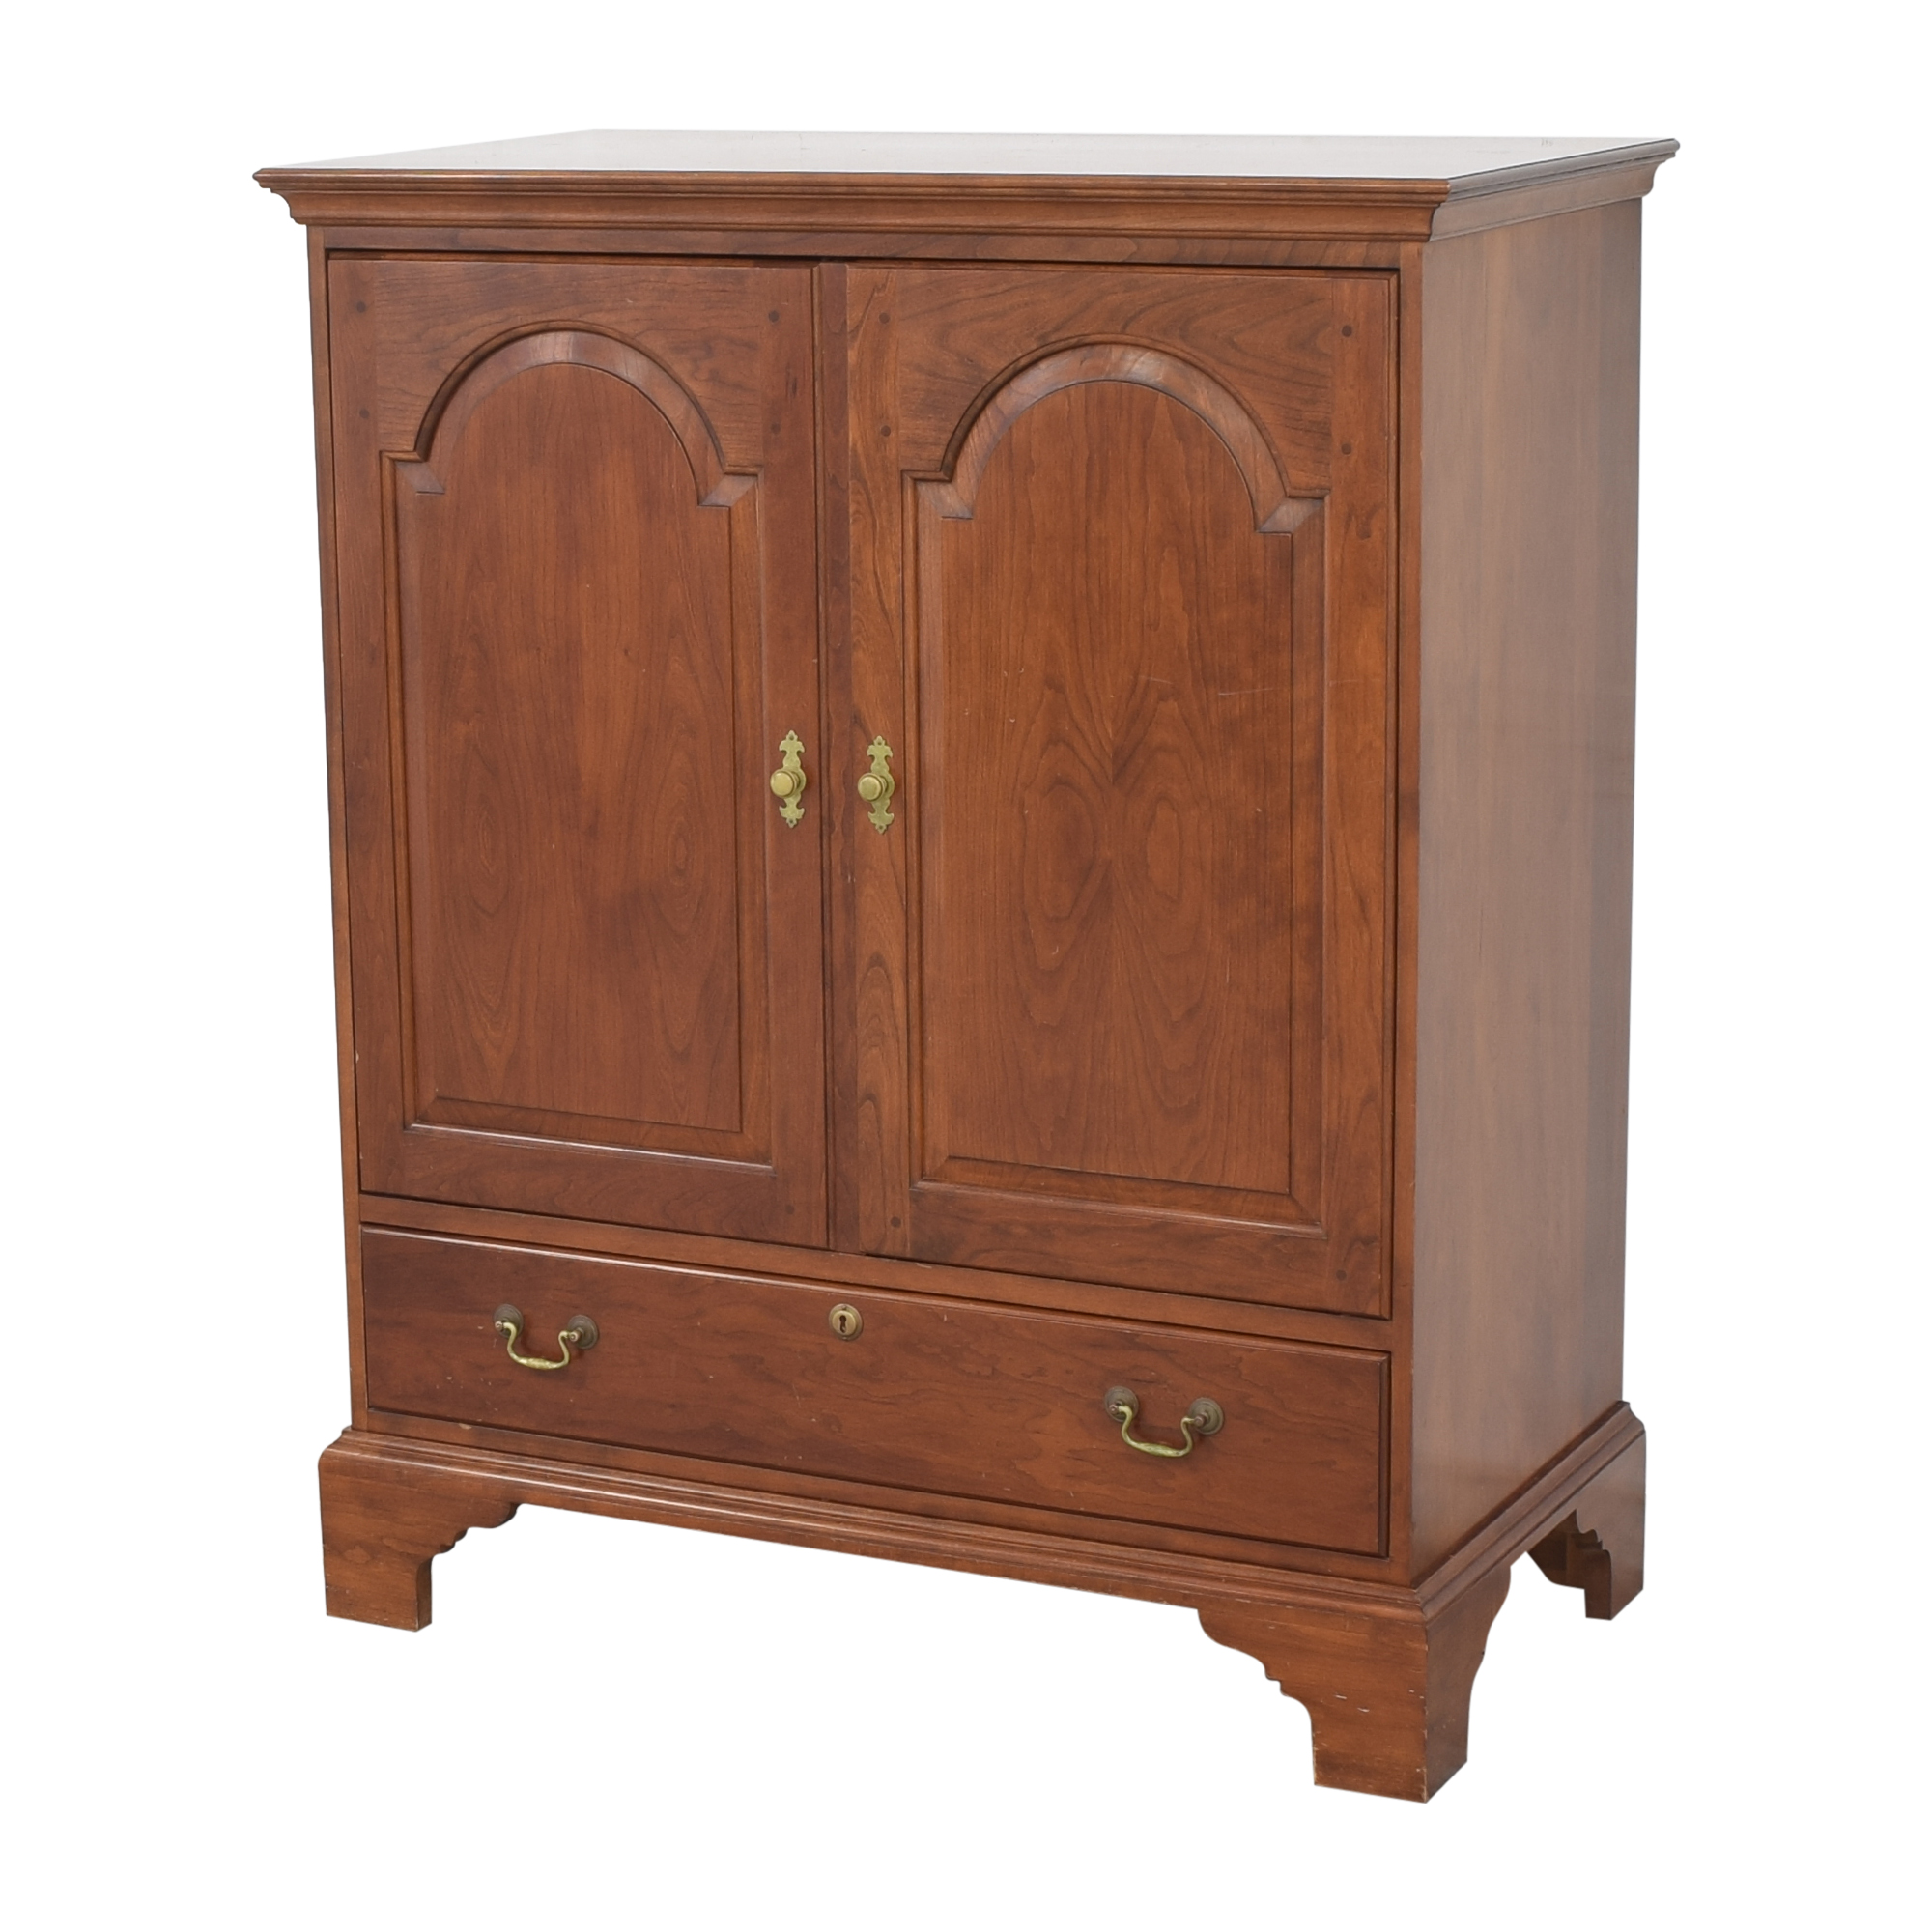 Stickley Furniture Stickley Furniture Media Cabinet pa